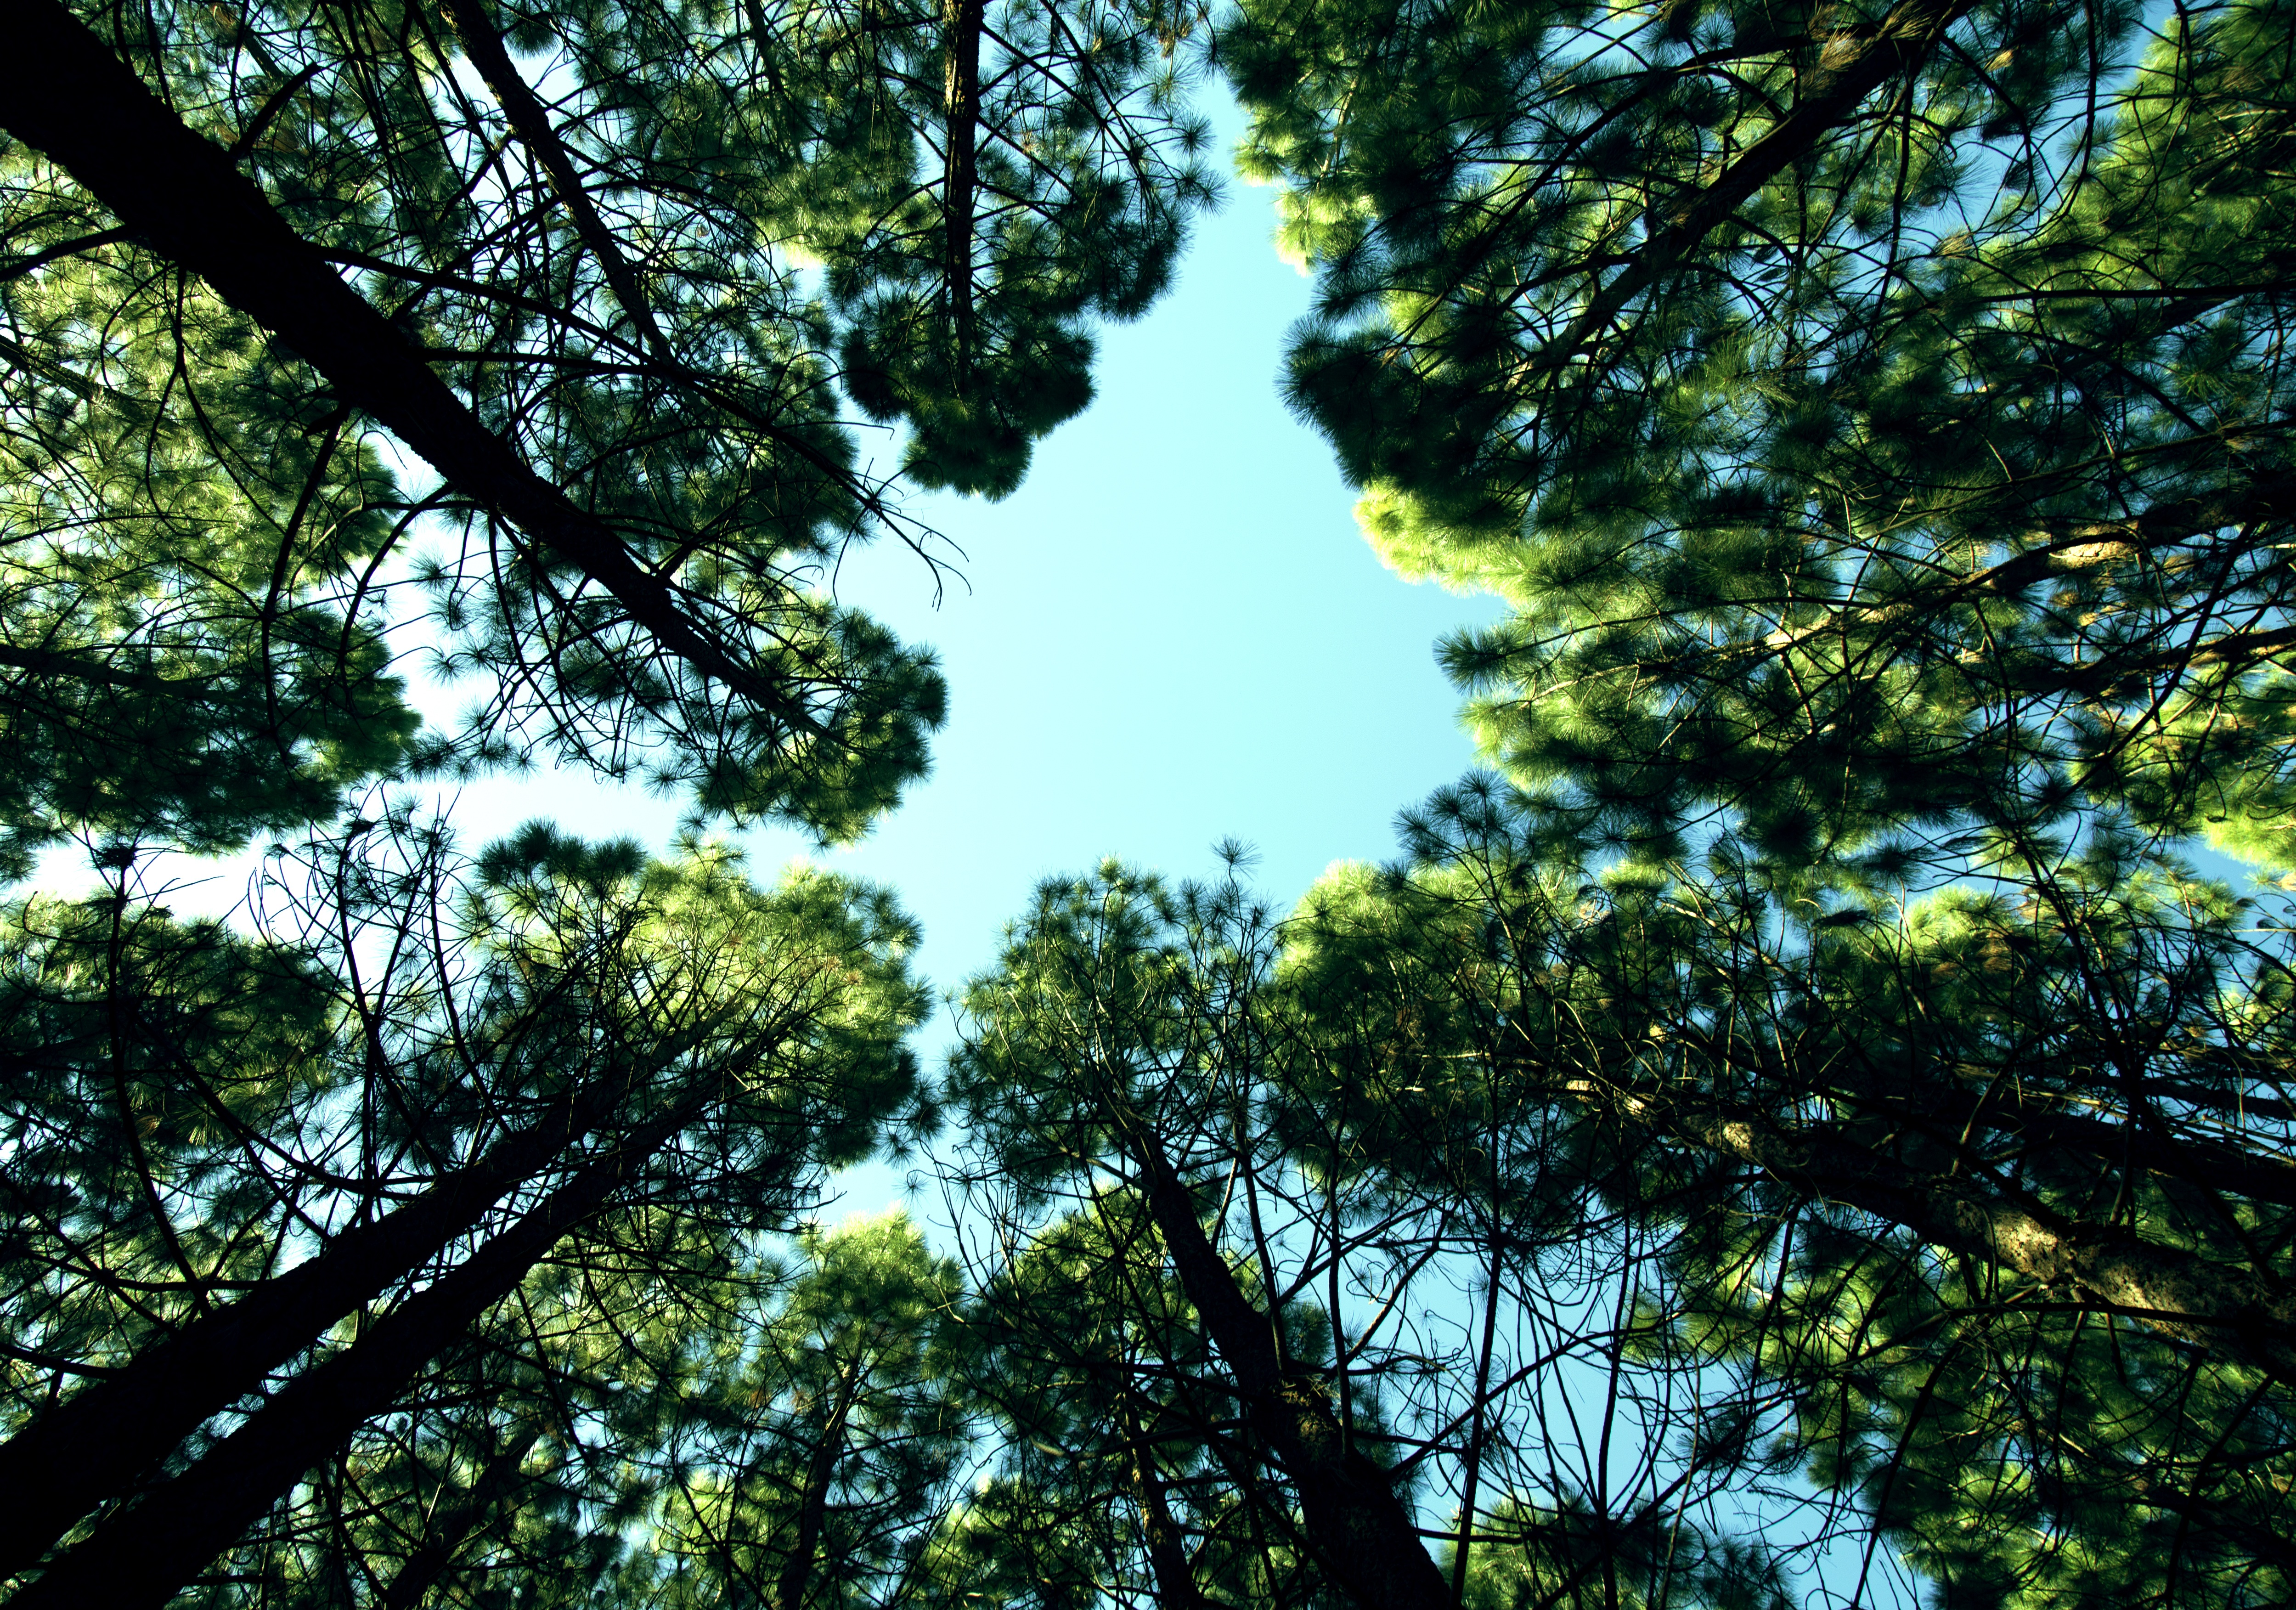 Forest, Tree, Wood, Sky, Plants, HQ Photo